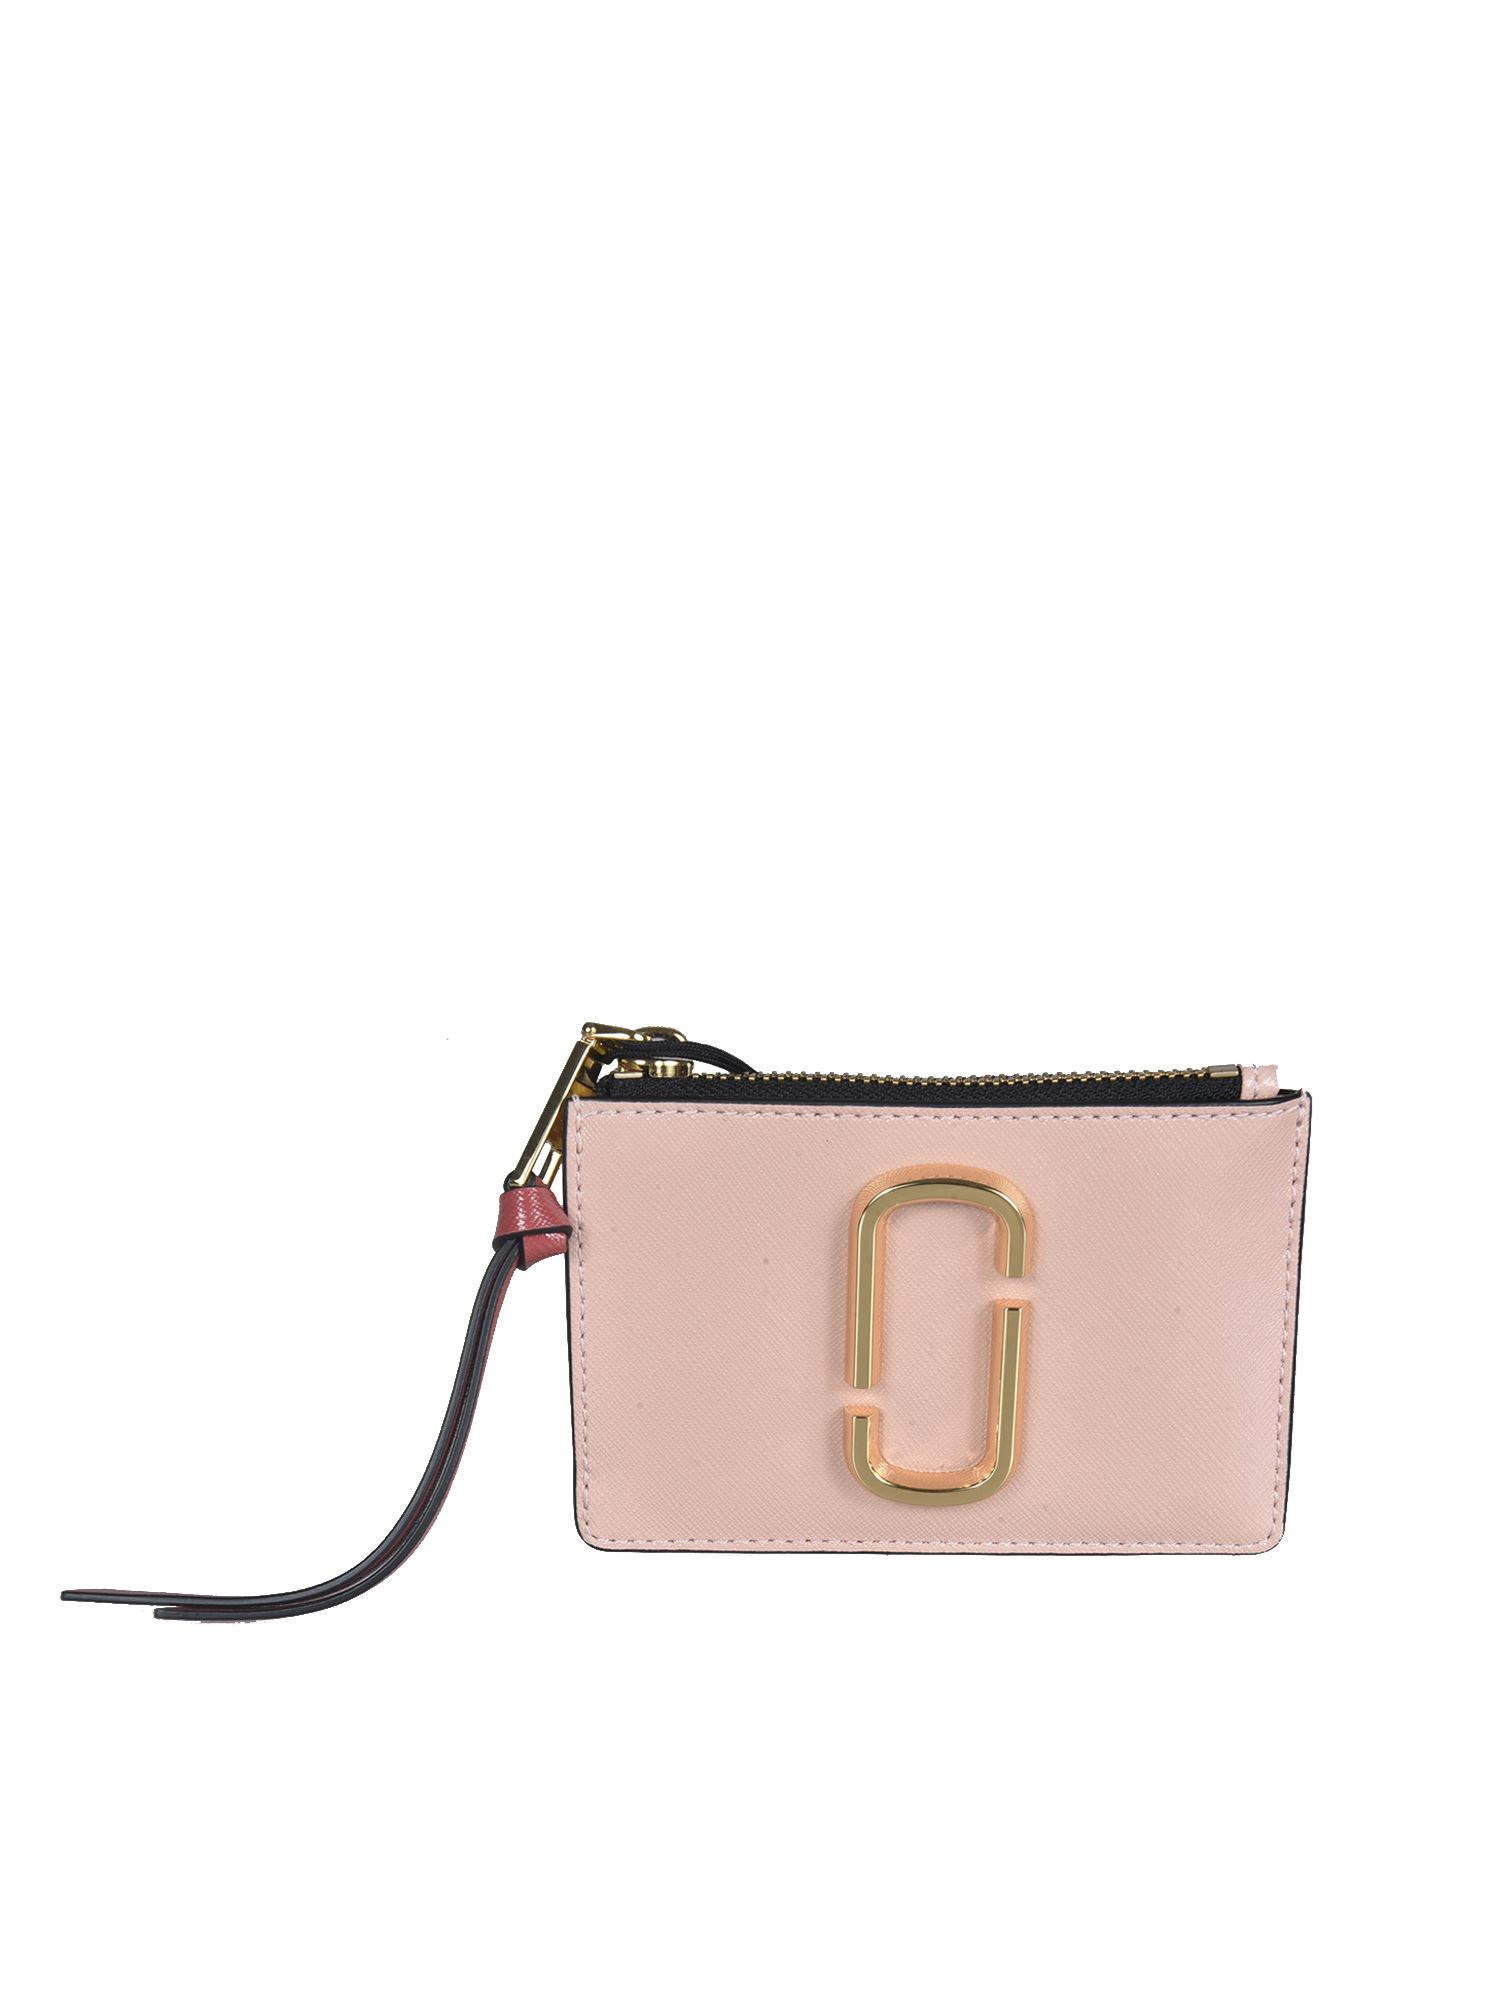 Marc Jacobs THE SNAPSHOT CARD HOLDER IN PINK